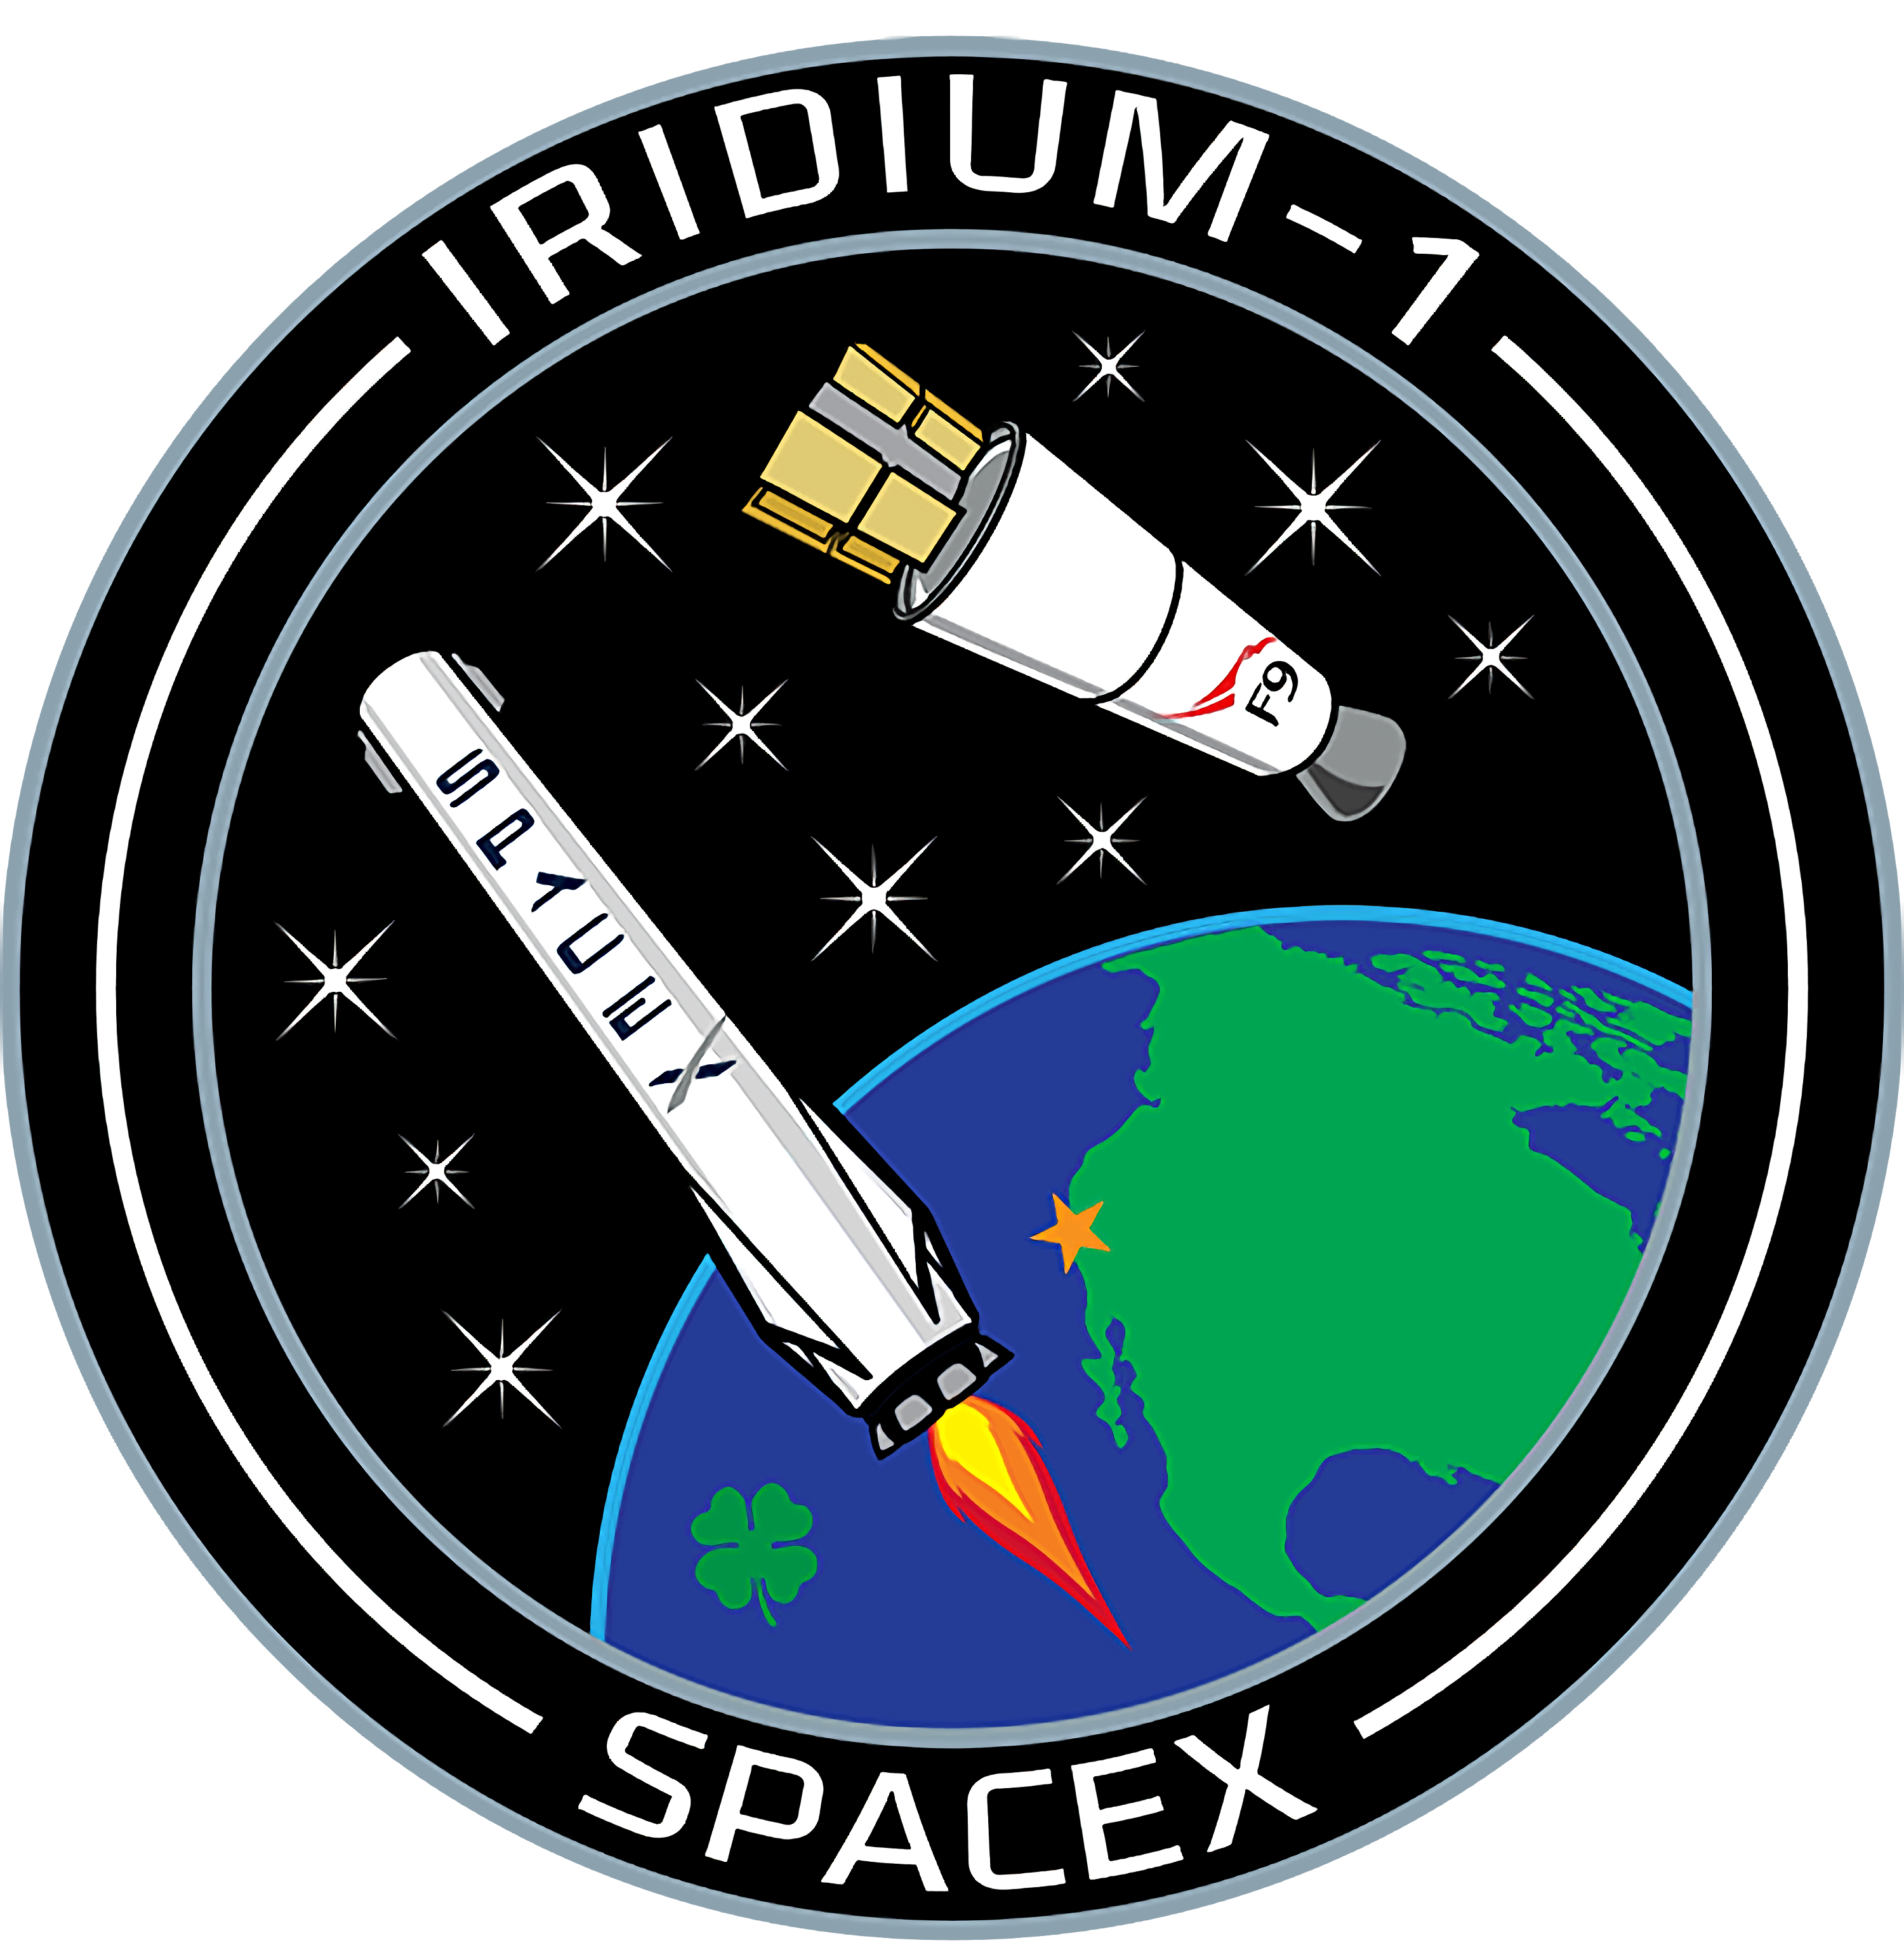 Iridium patch spacex interpolated. Missions clipart space flight